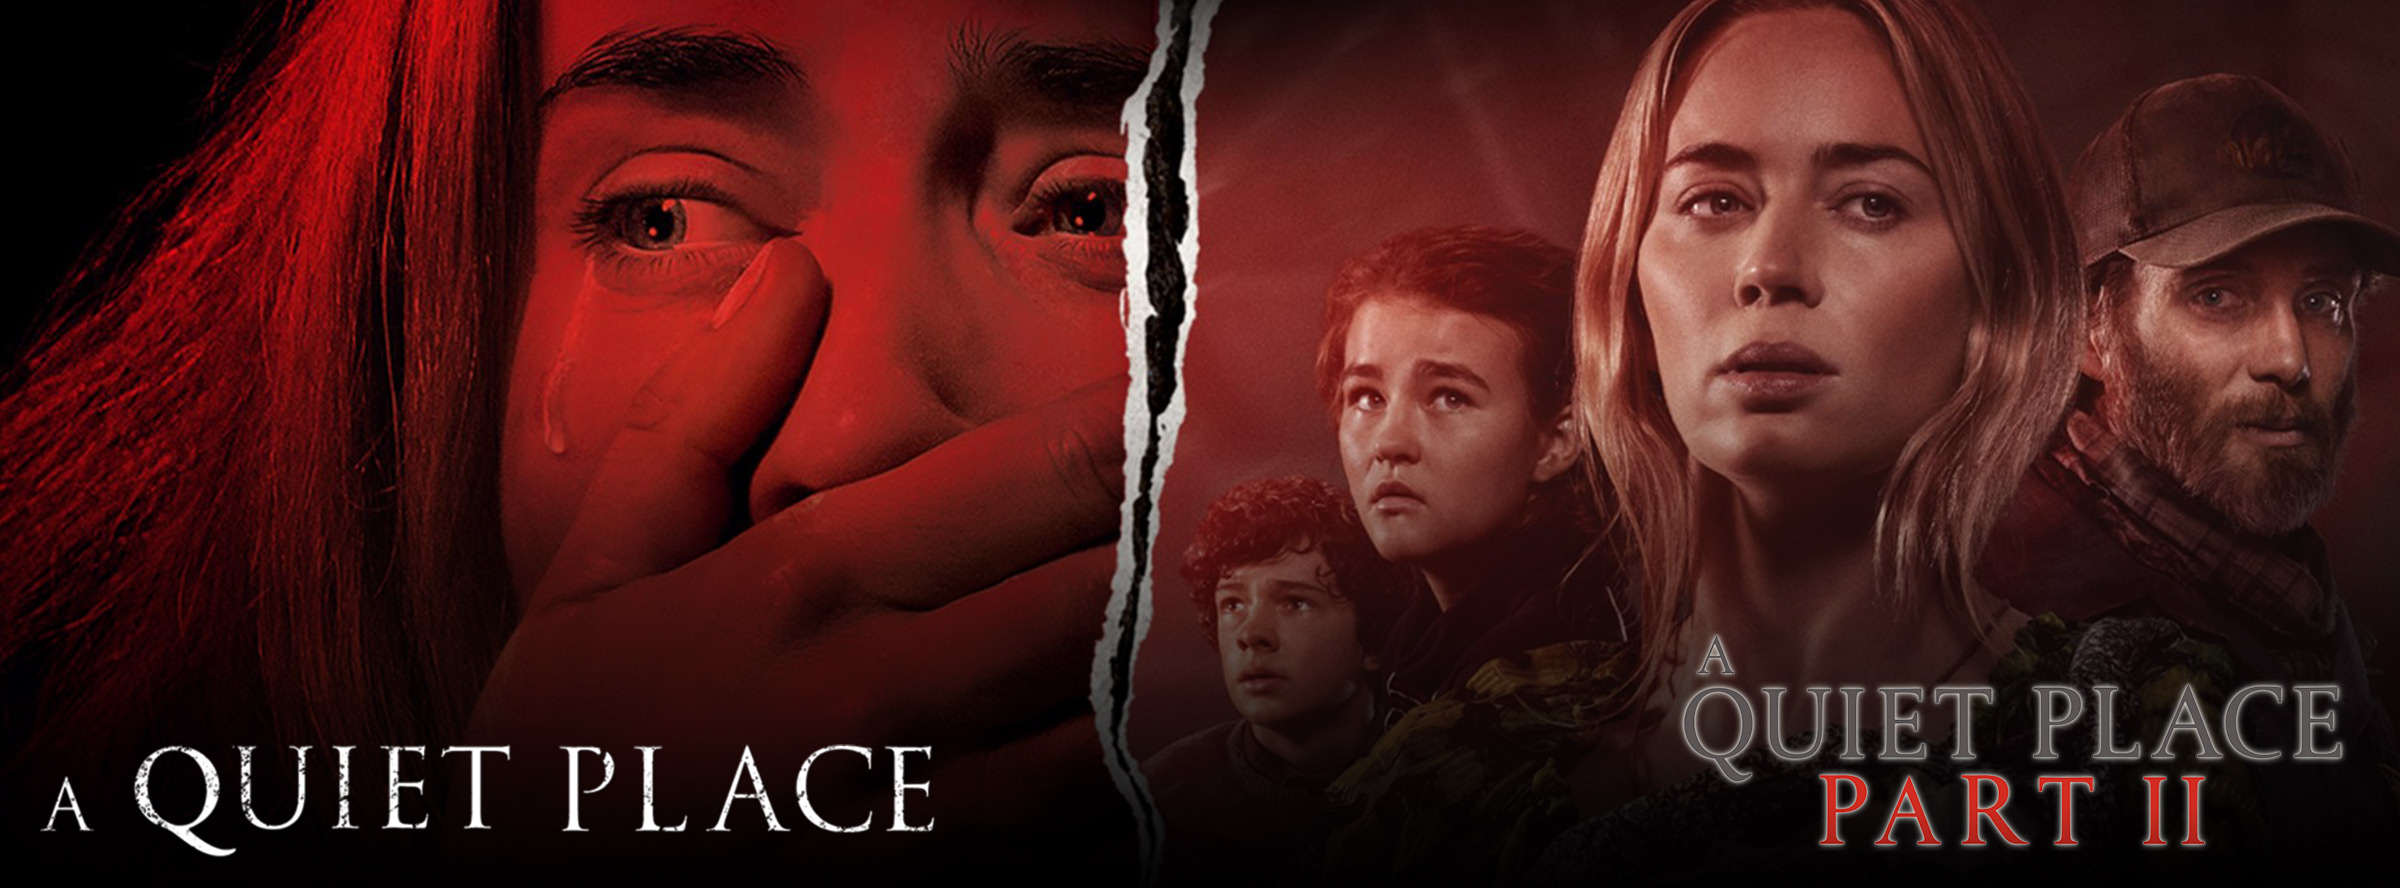 Slider Image for A Quiet Place Double Feature